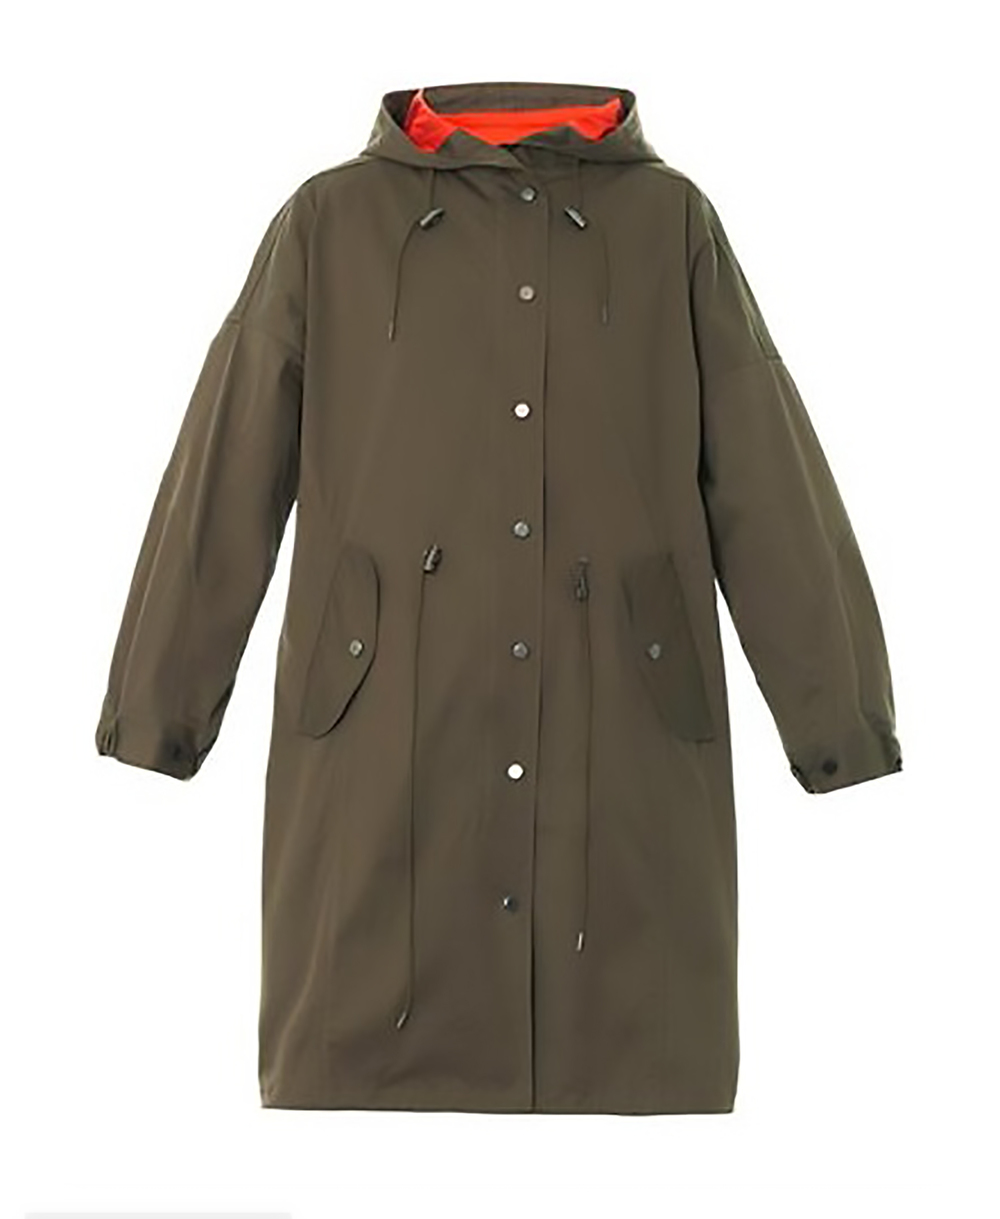 matches DKNY cotton blend canvas parka rain gear 1500.jpg